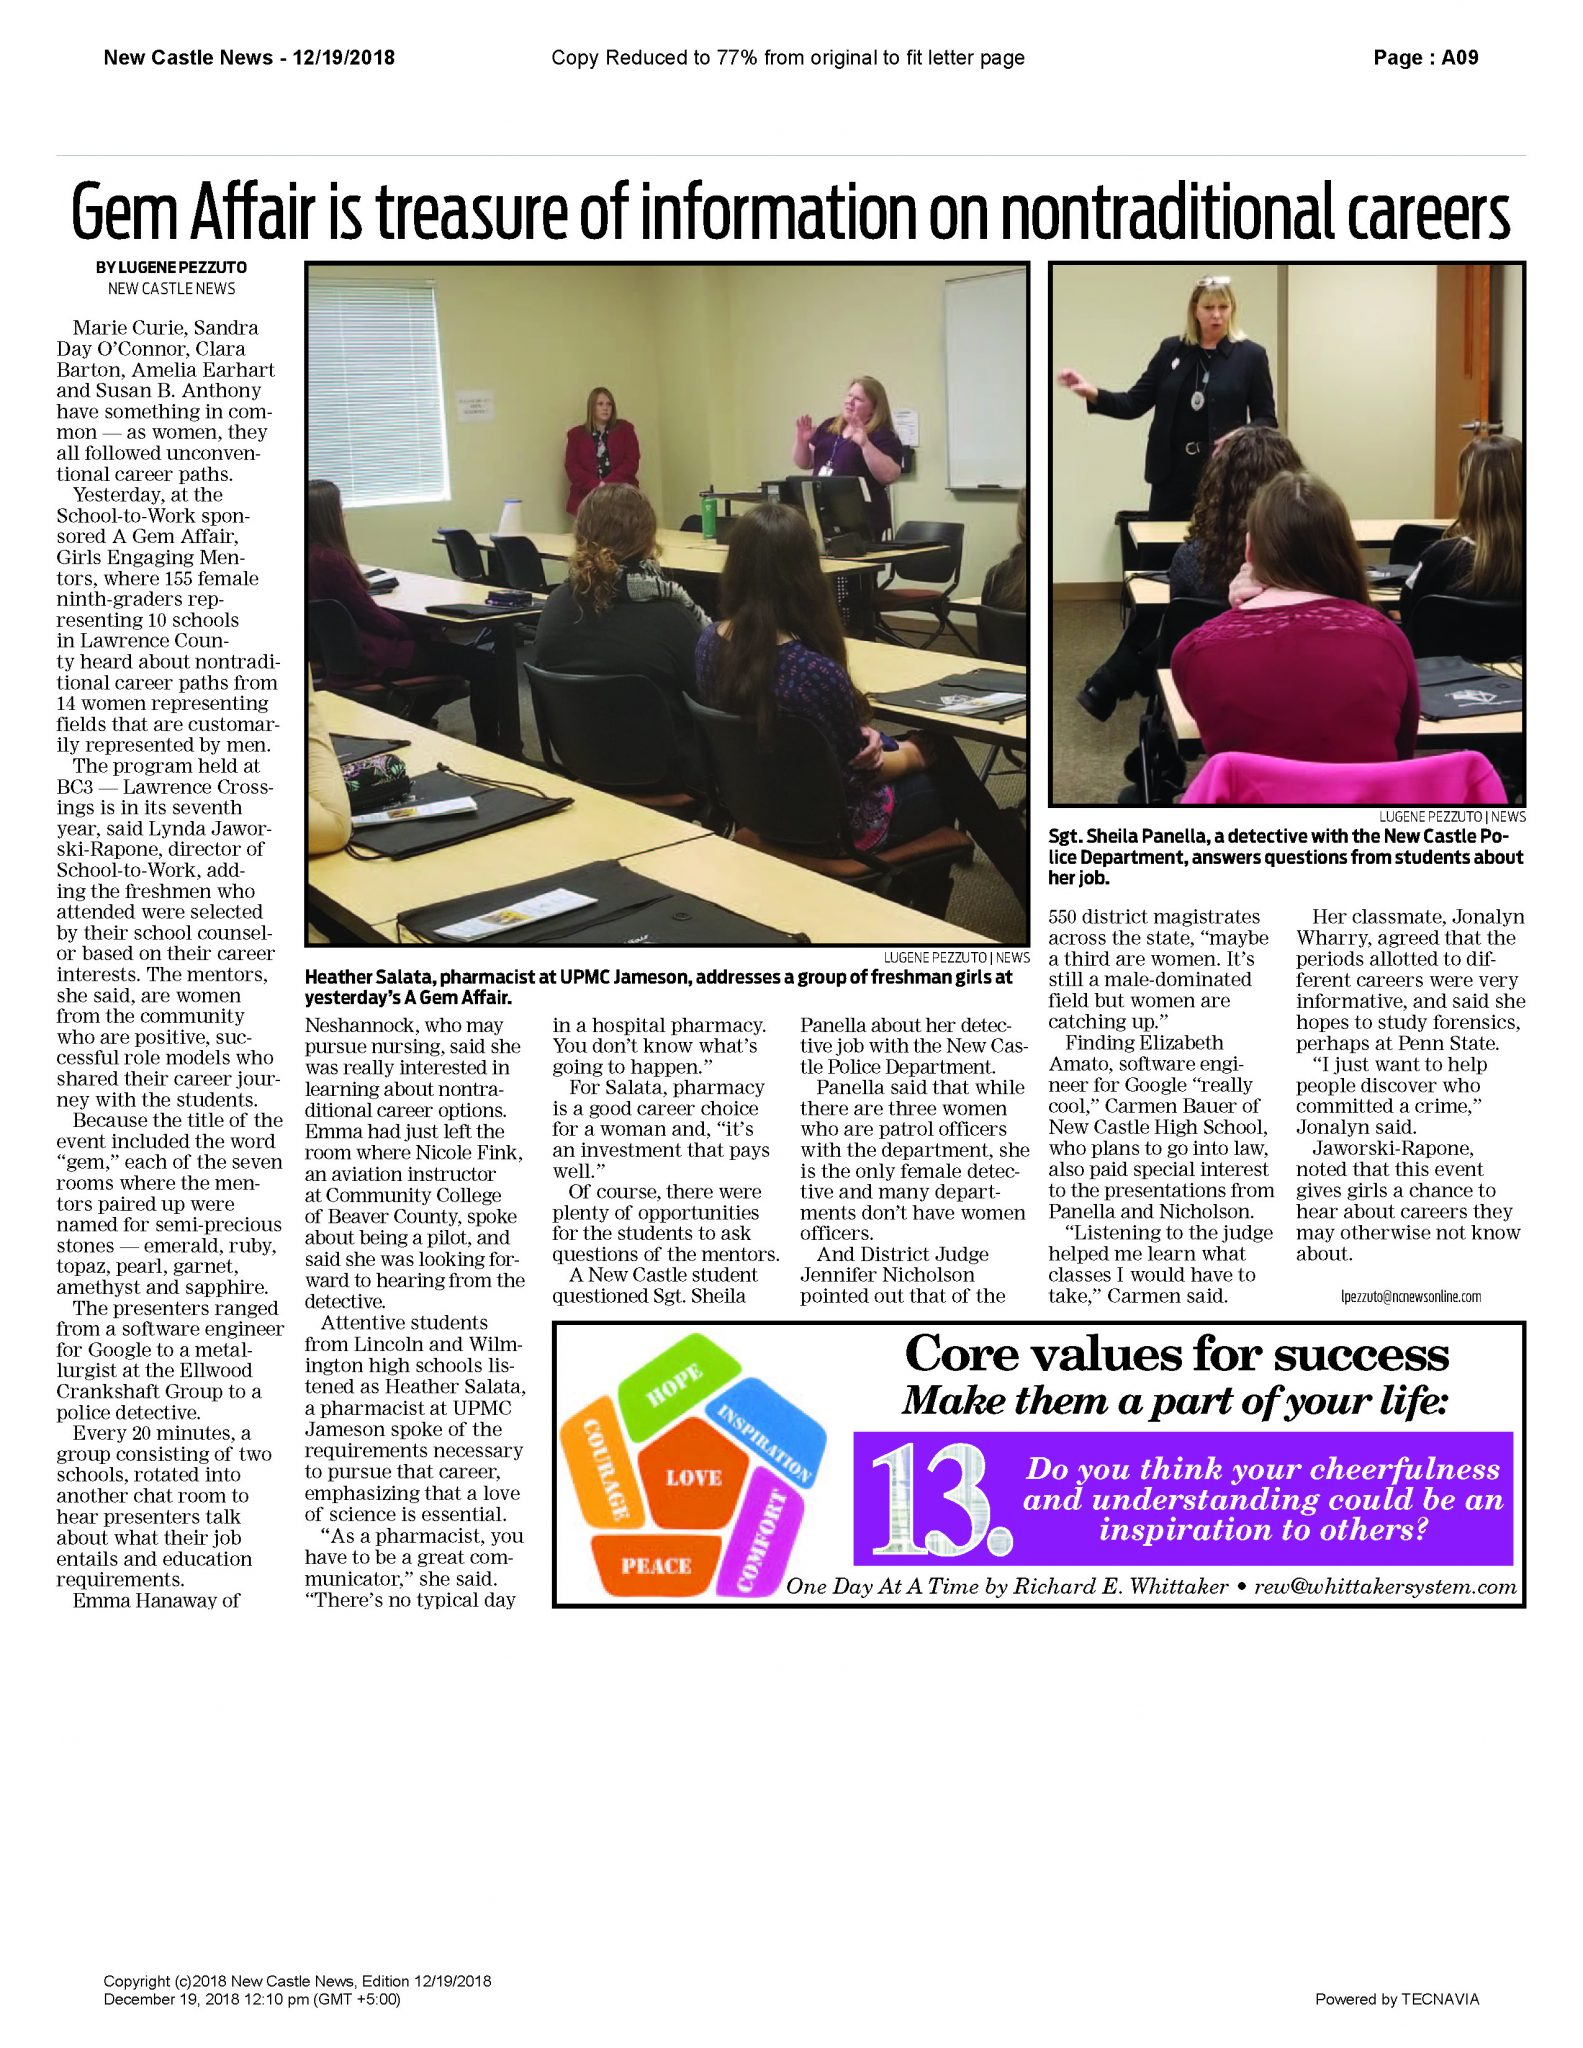 GEM 2018 – Newsarticle – New Castle News 12-19-2018